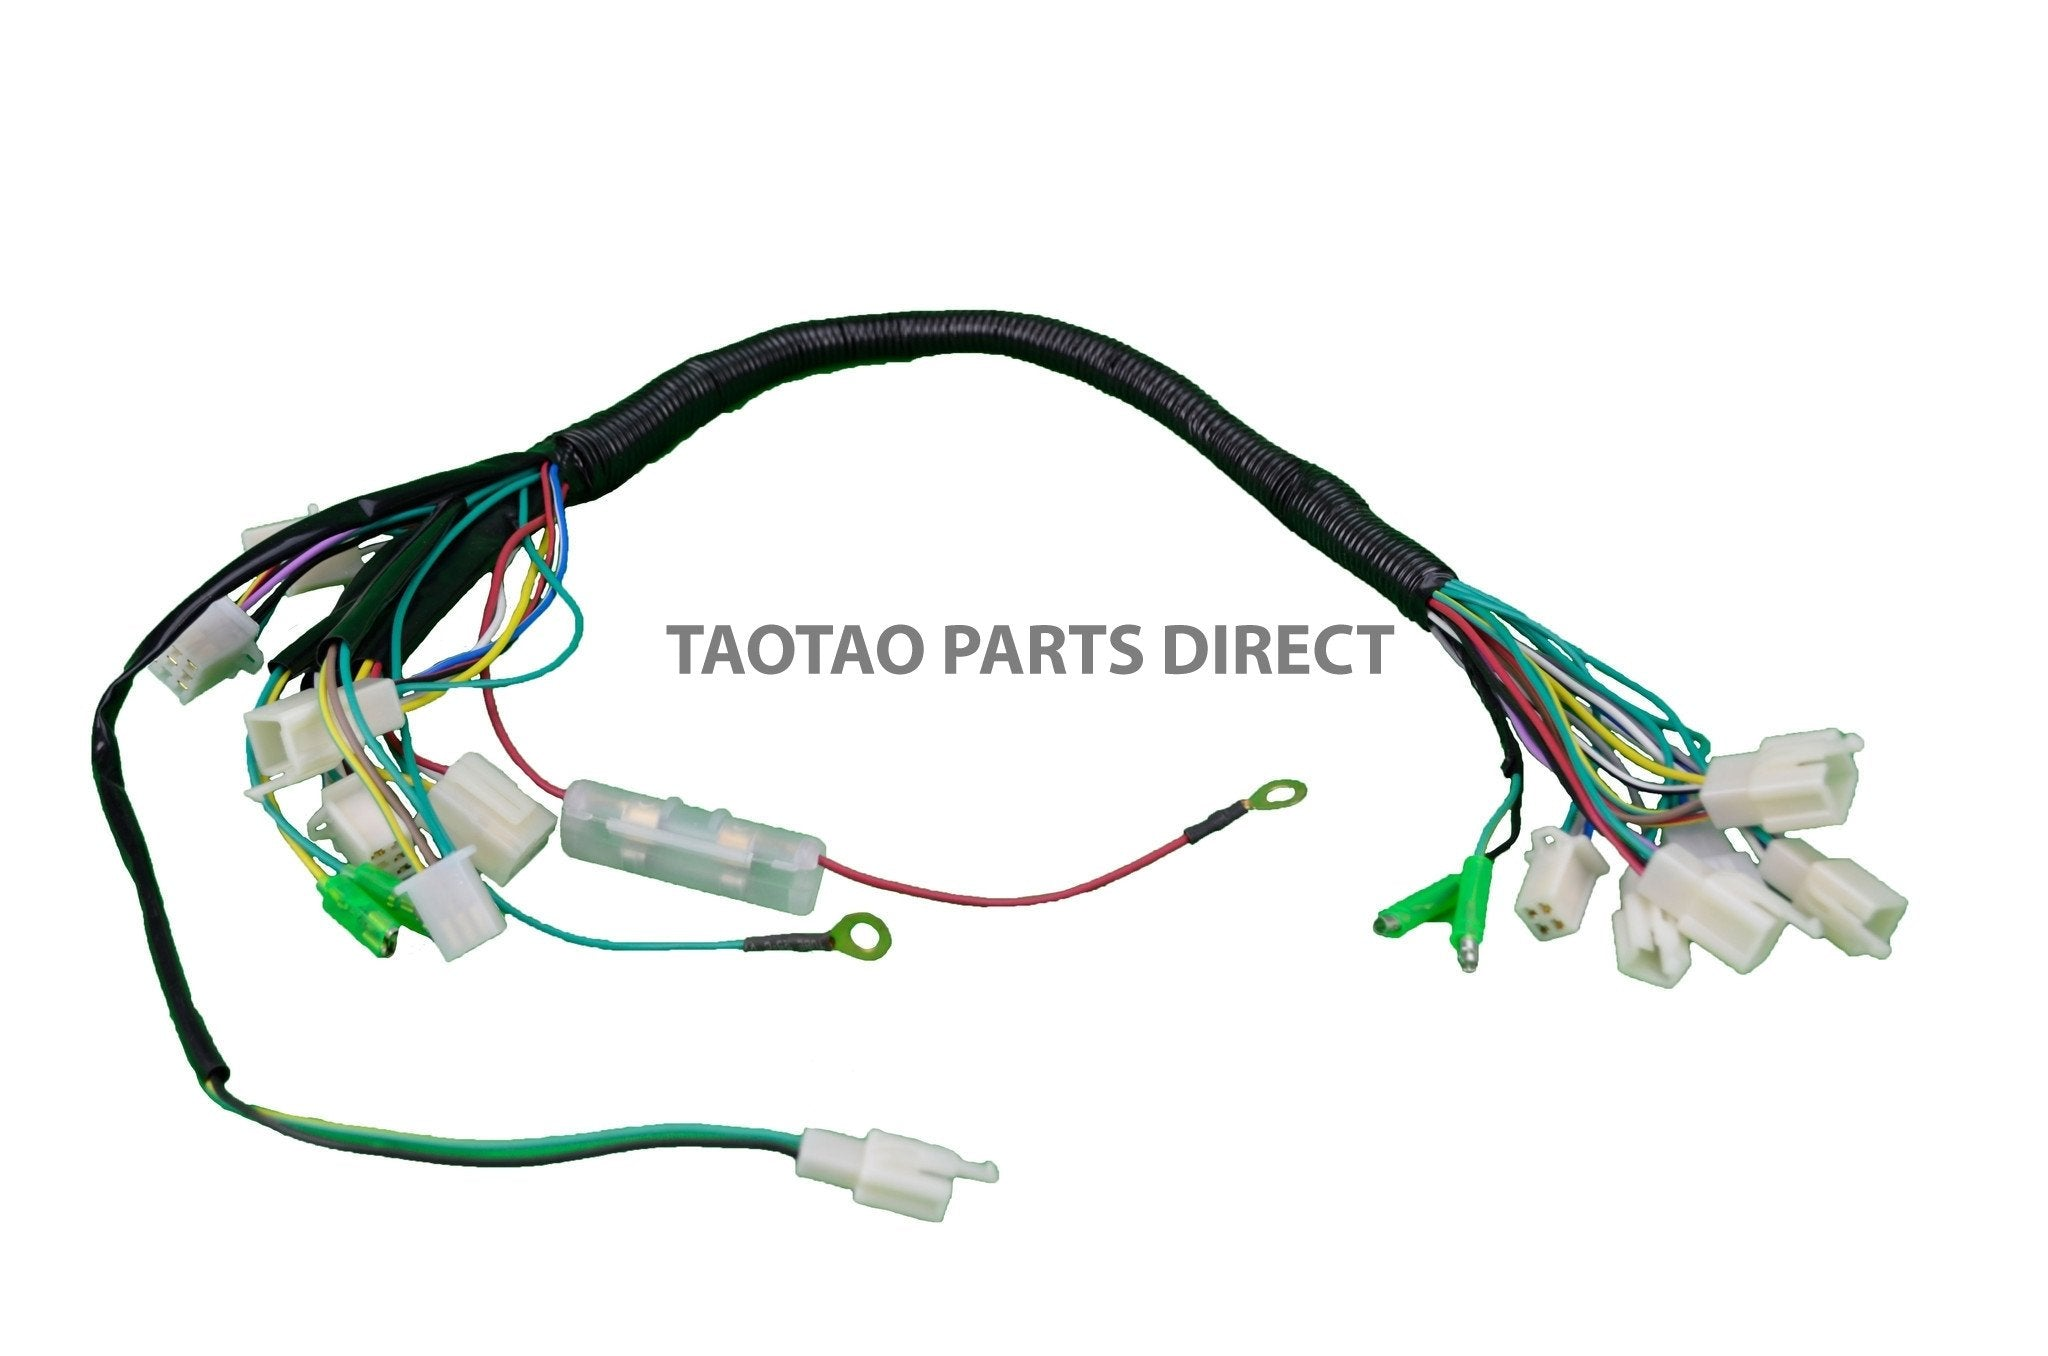 Ata110b Wire Harness 8 Wiring For Atv